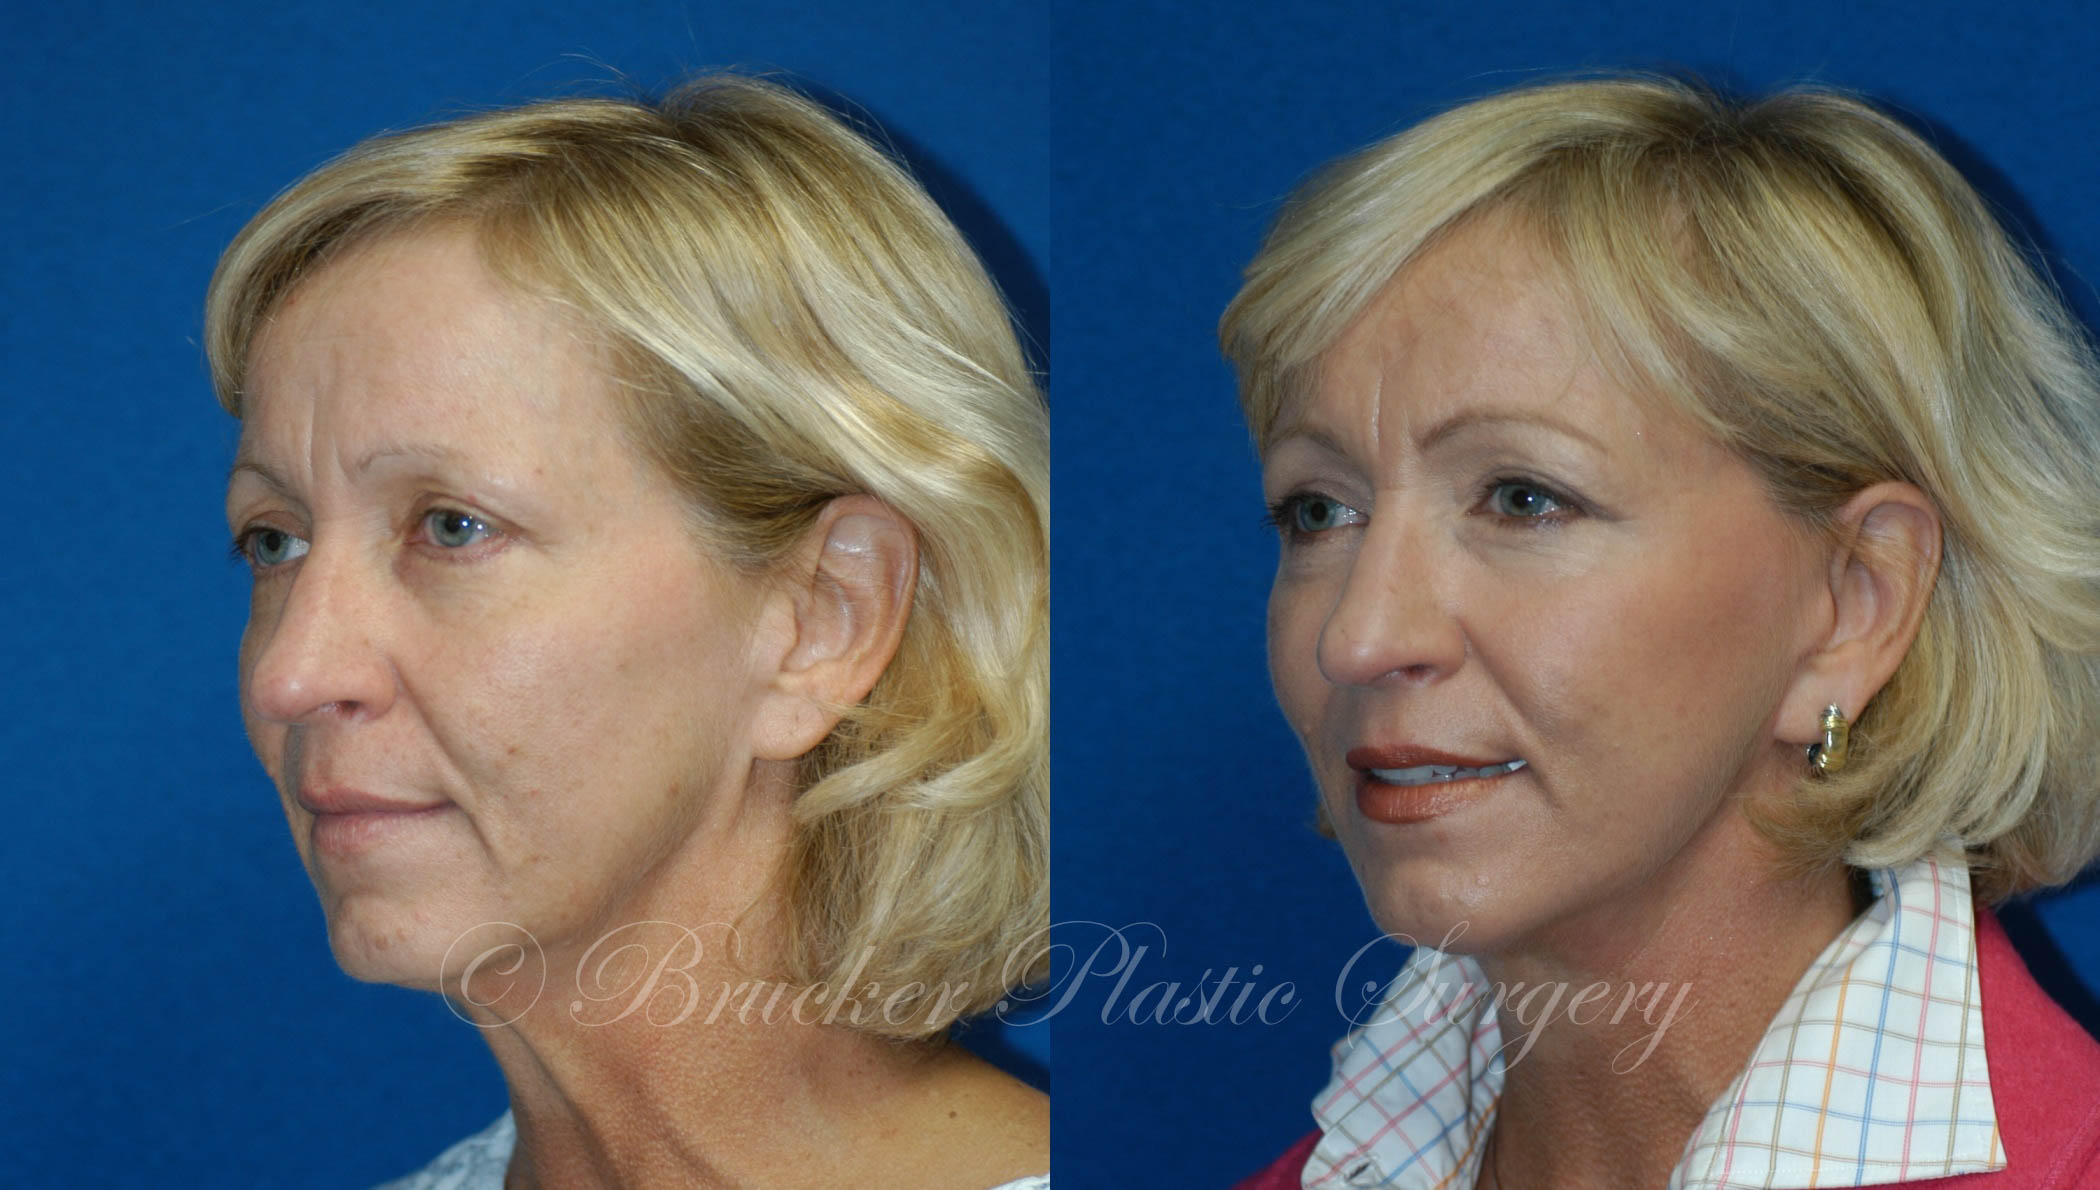 Facelift Del Mar Patient 1.3